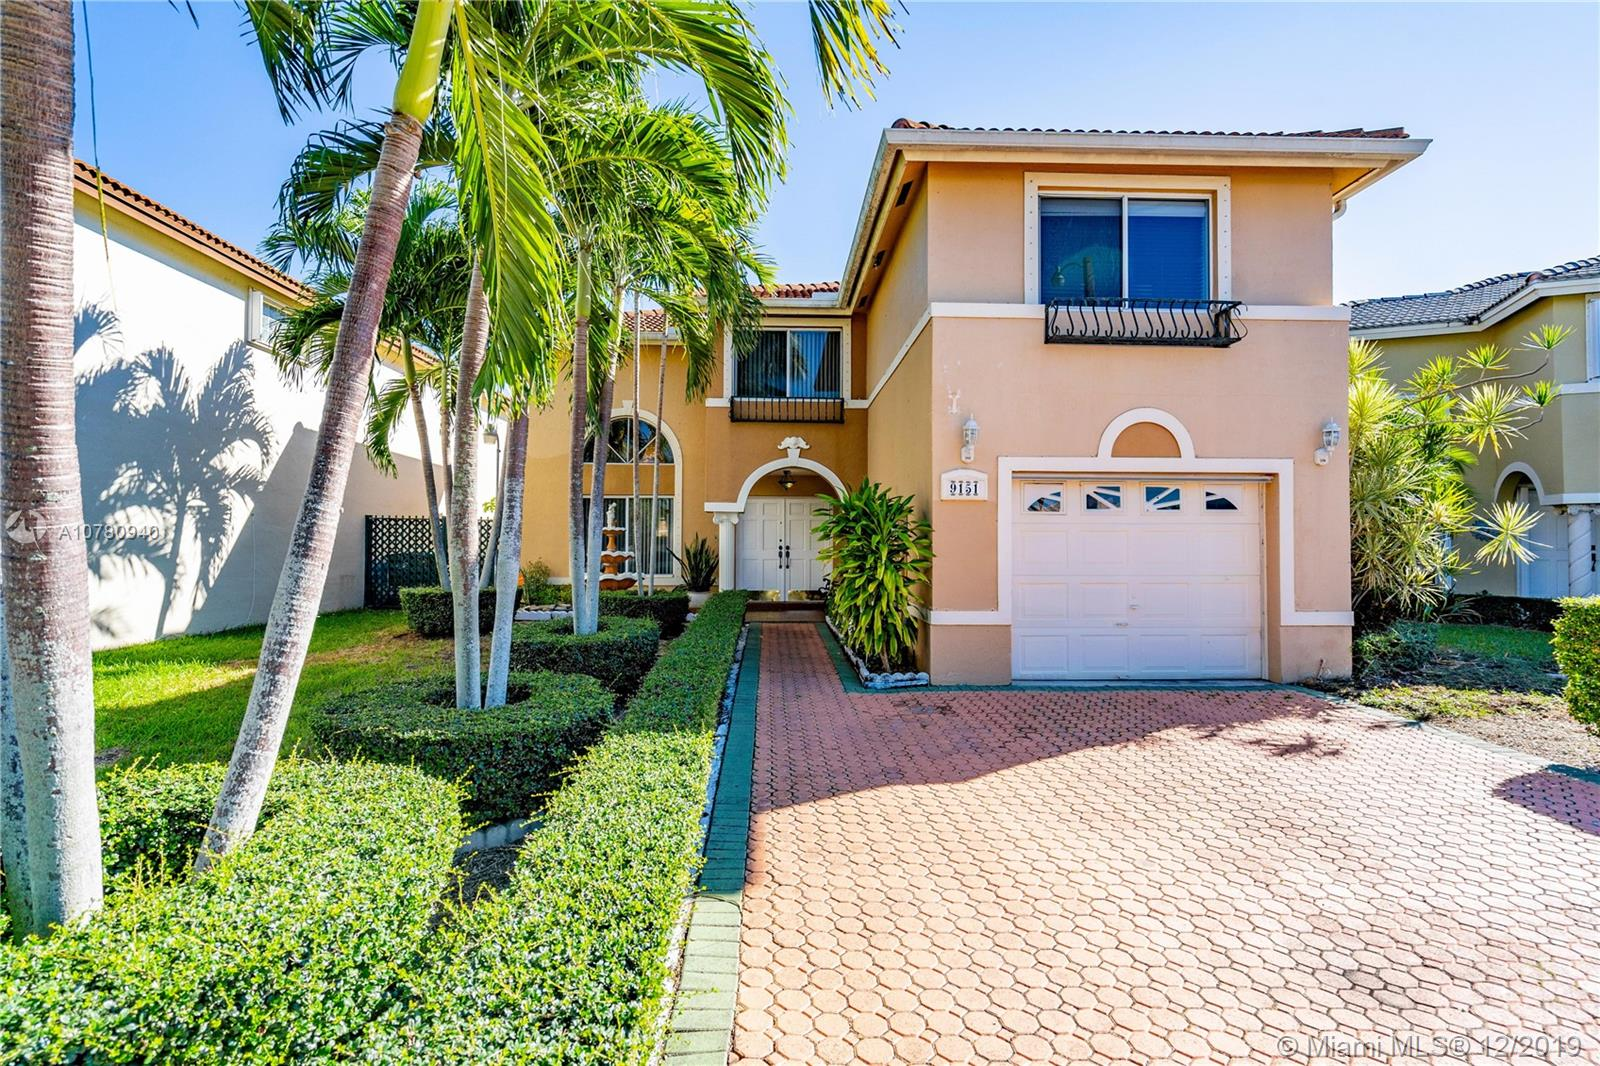 9151 SW 156th Ct, Kendall in Miami-dade County County, FL 33196 Home for Sale